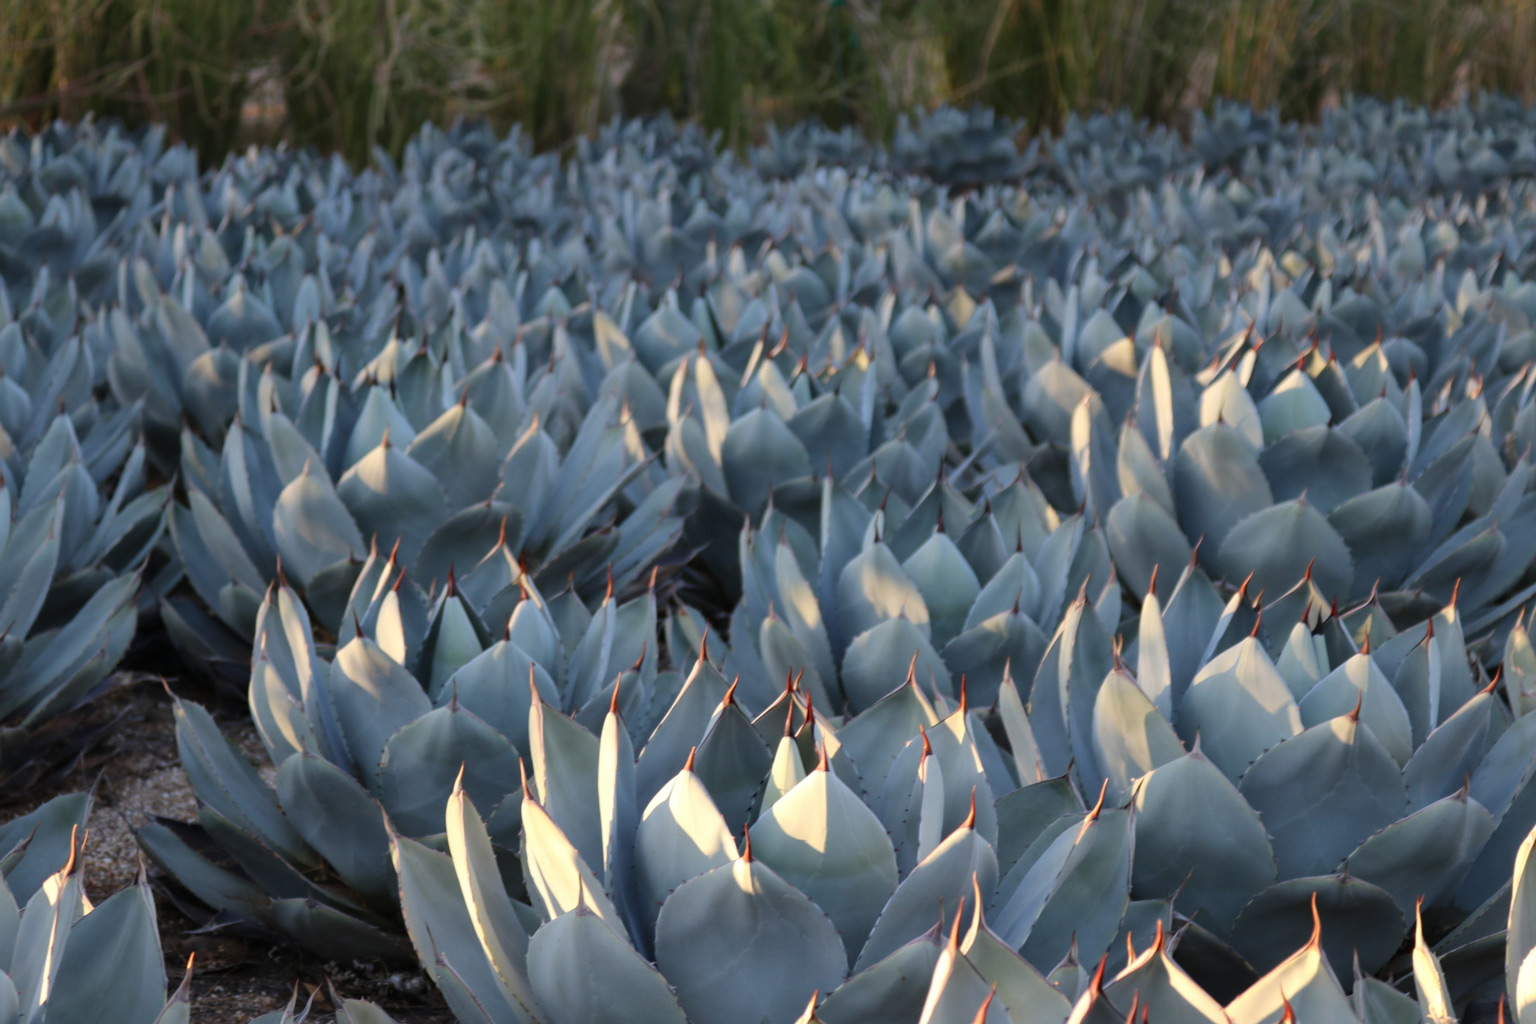 A grouping of Artichoke Agave.